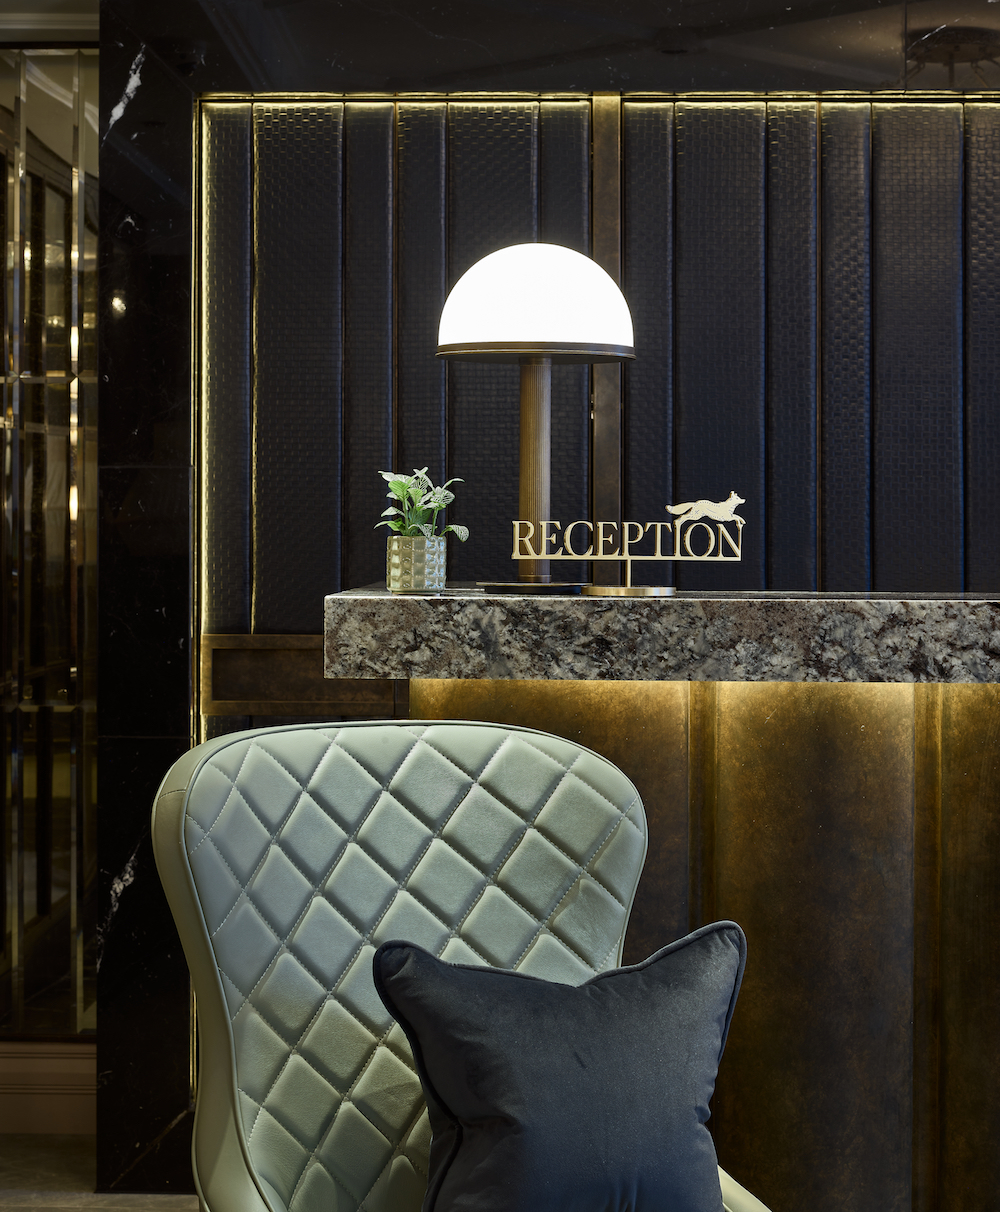 Textured leather seat in reception of hotel